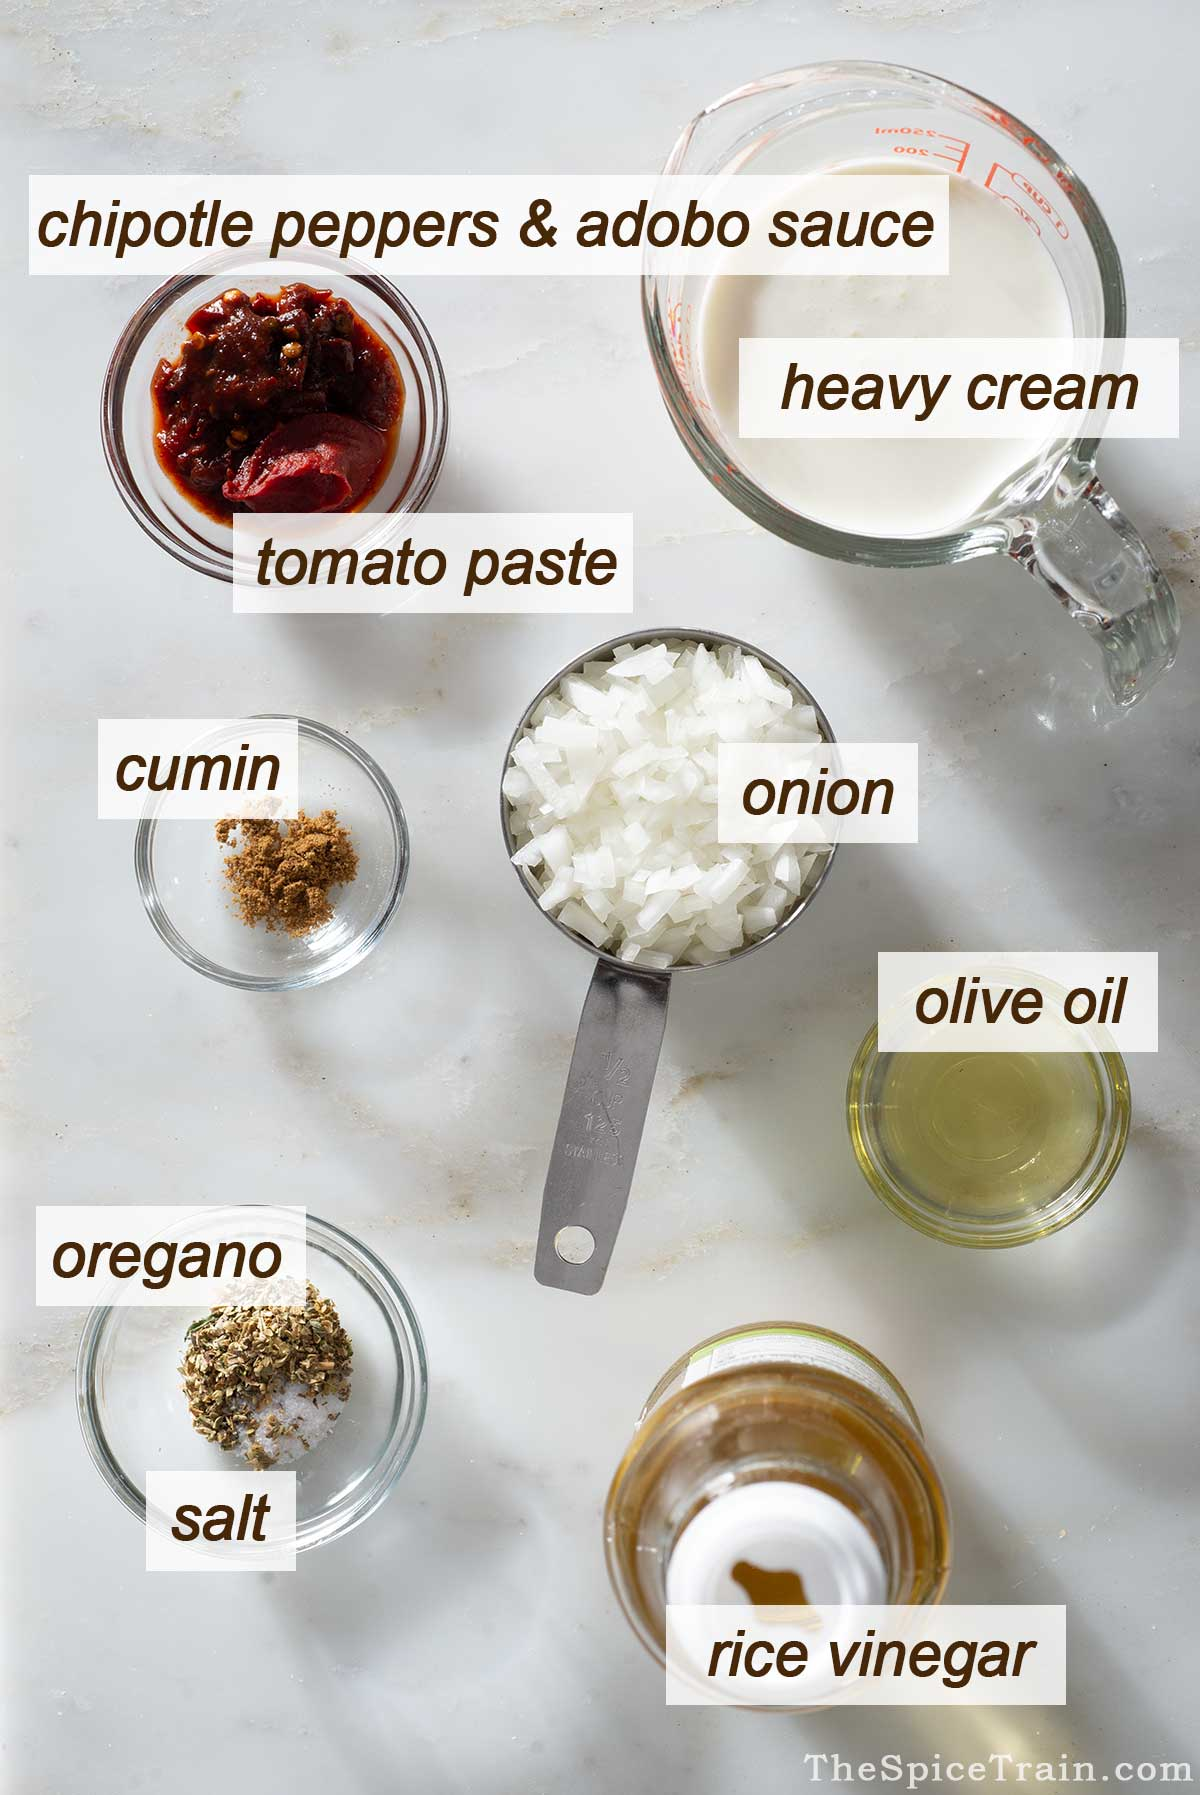 Chipotle sauce ingredients on a kitchen counter.